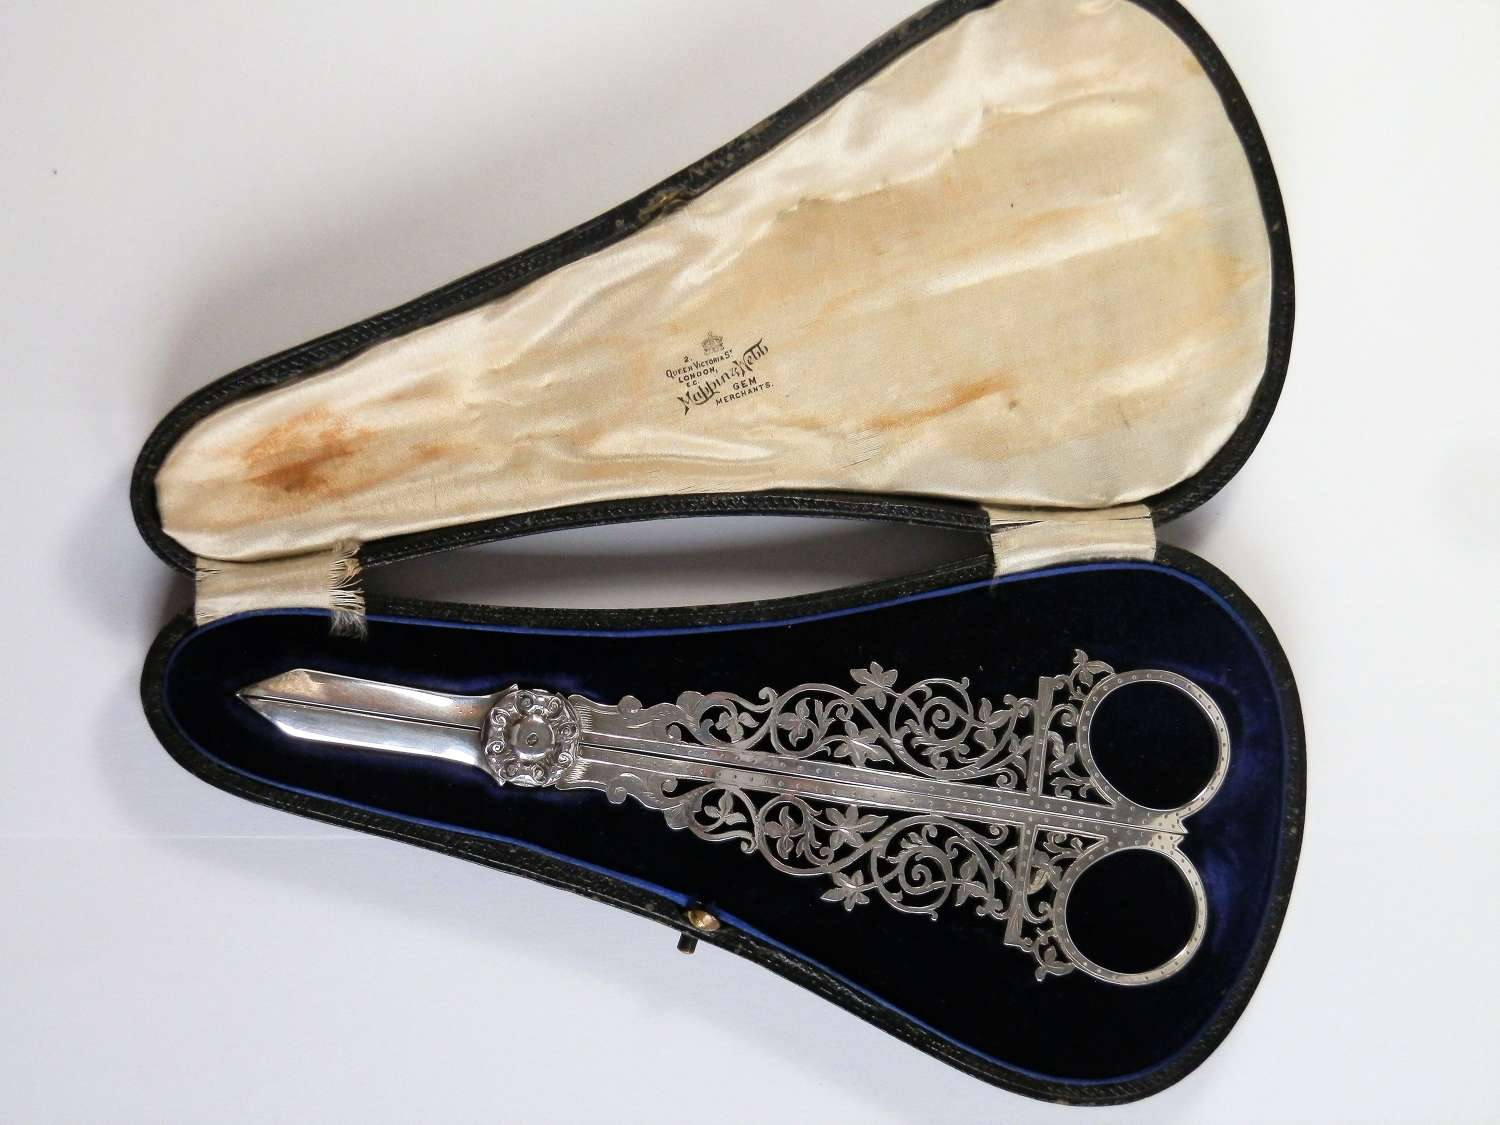 Edwardian Mappin & Webb cased silver grape scissors, Sheffield 1908